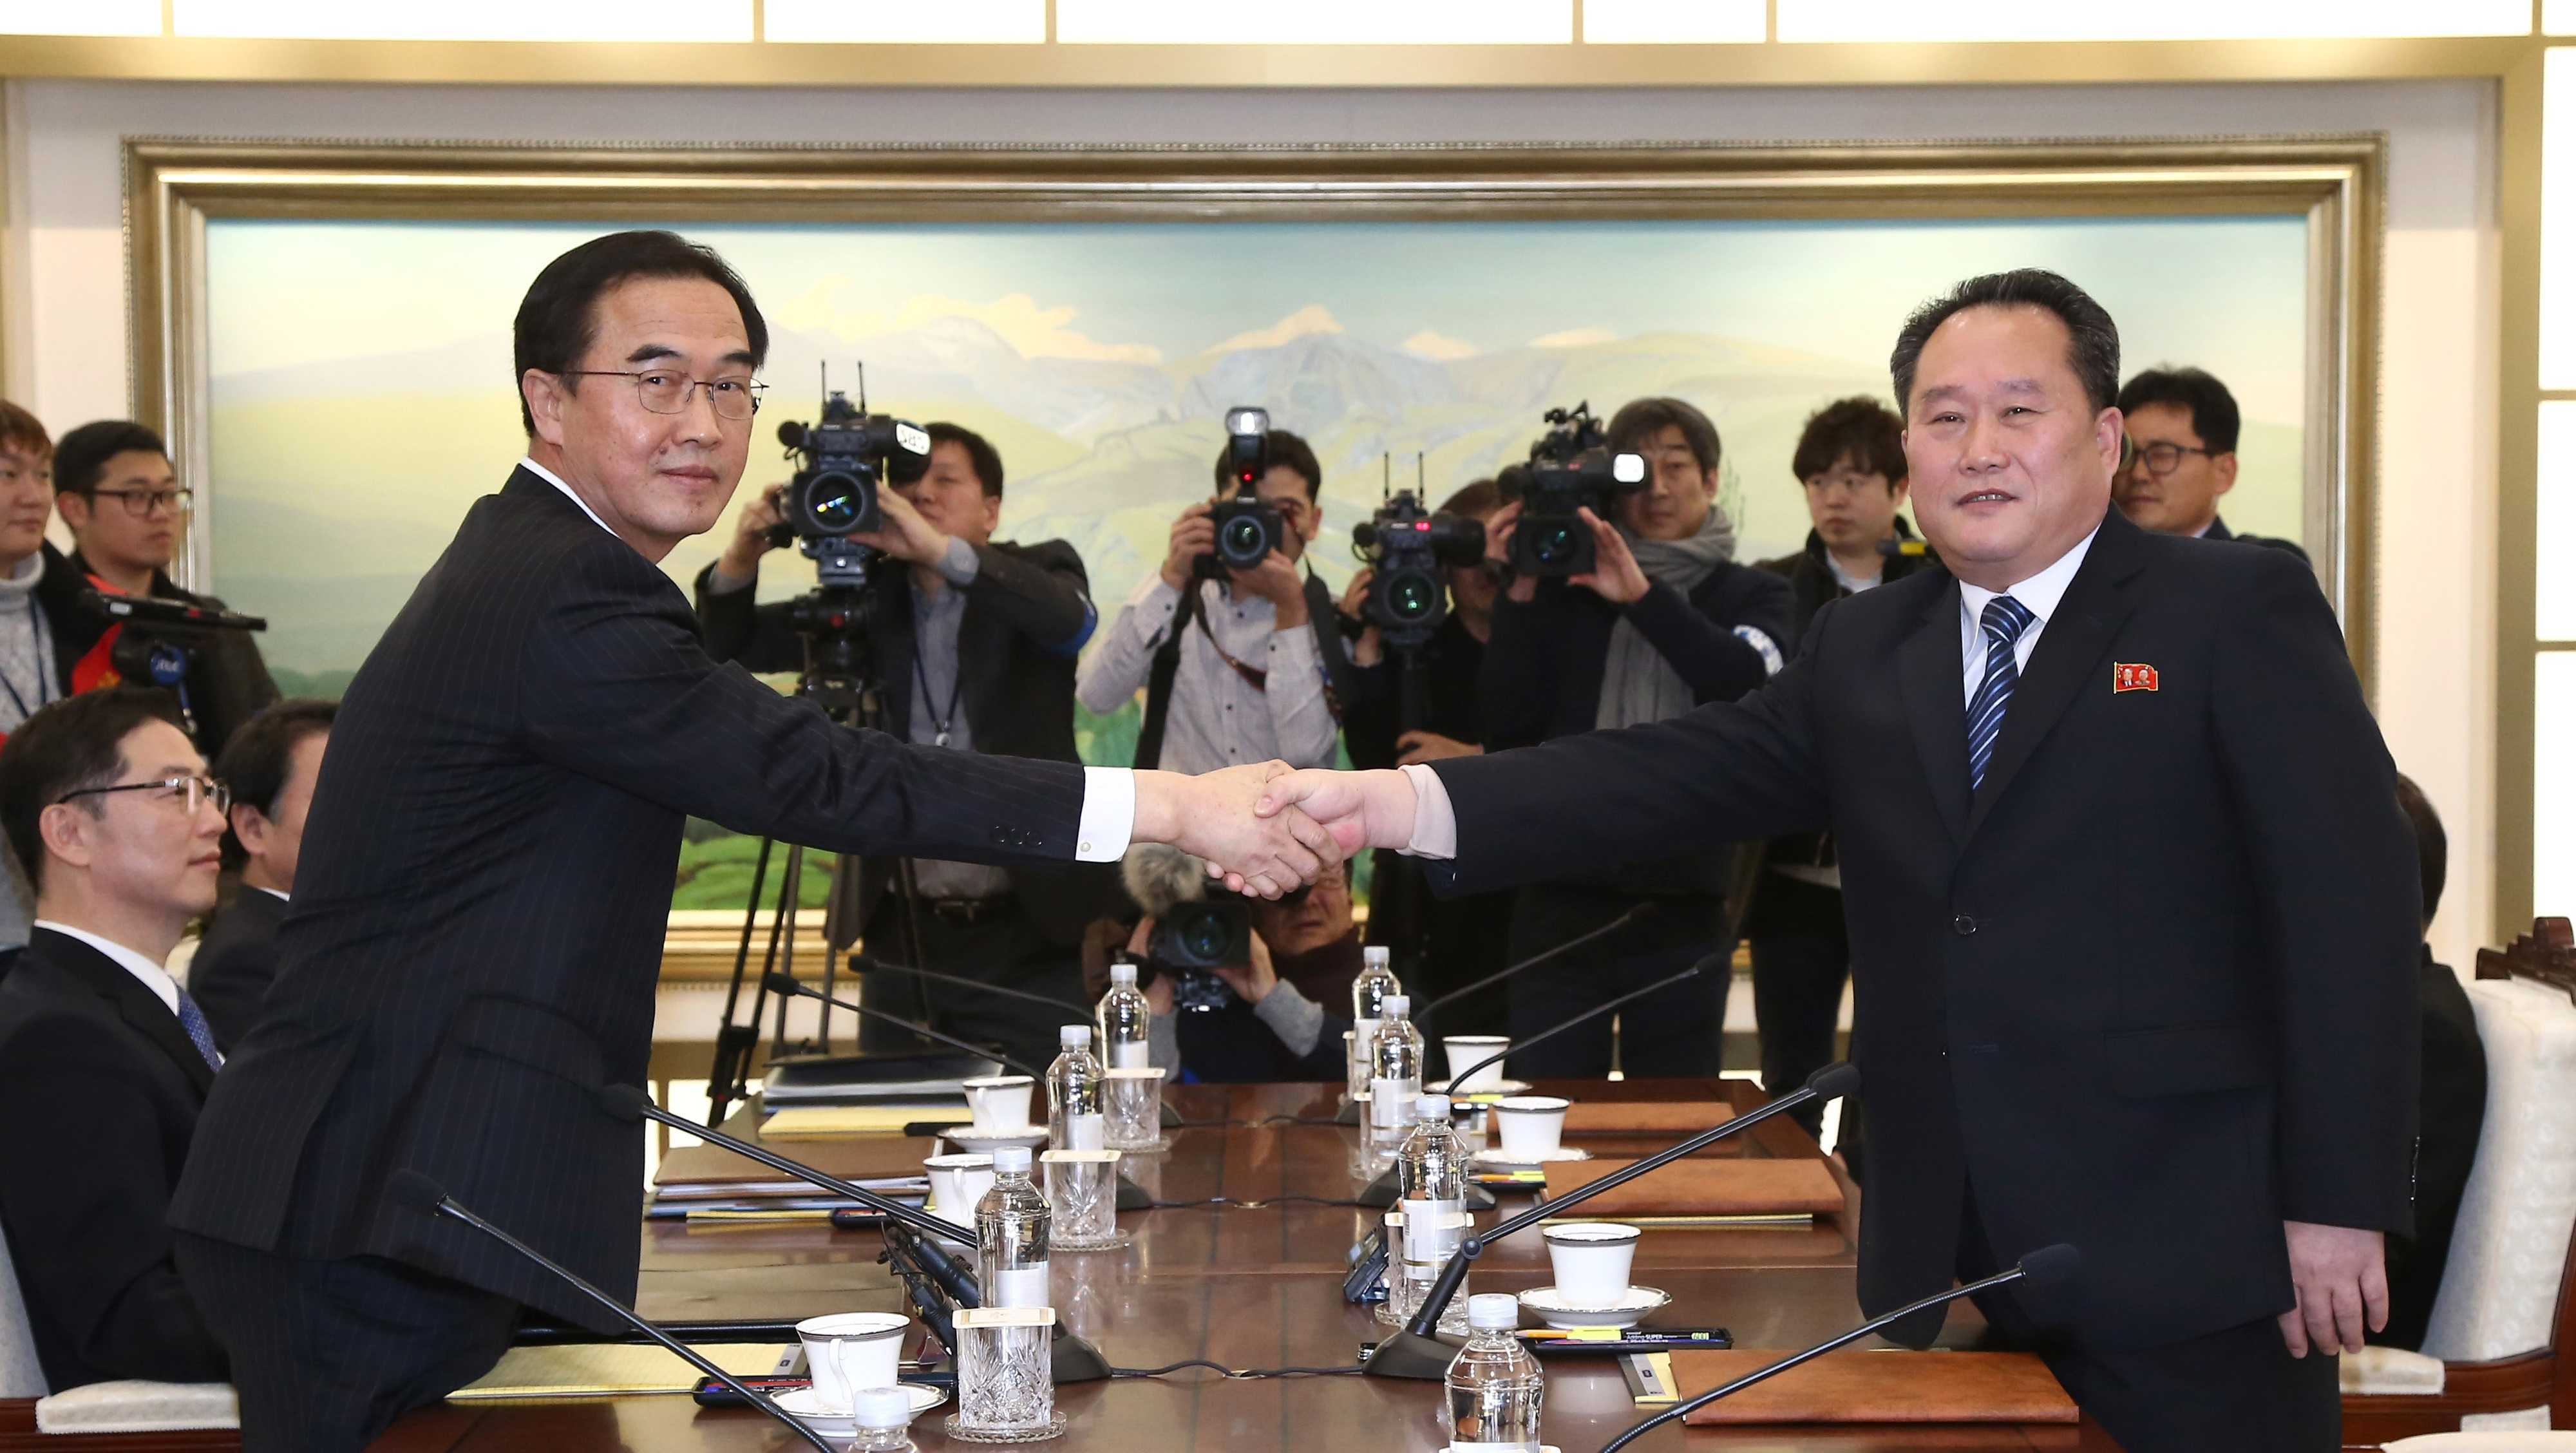 South Korean Unification Minister Cho Myoung-gyon, left, poses with head of North Korean delegation Ri Son Gwon while shaking hands during their meeting at the Panmunjom in the Demilitarized Zone in Paju, South Korea, Tuesday, Jan. 9, 2018. Senior officials from the rival Koreas said Tuesday they would try to achieve a breakthrough in their long-strained ties as they sat for rare talks at the border to discuss how to cooperate in next month's Winter Olympics in the South and other issues.